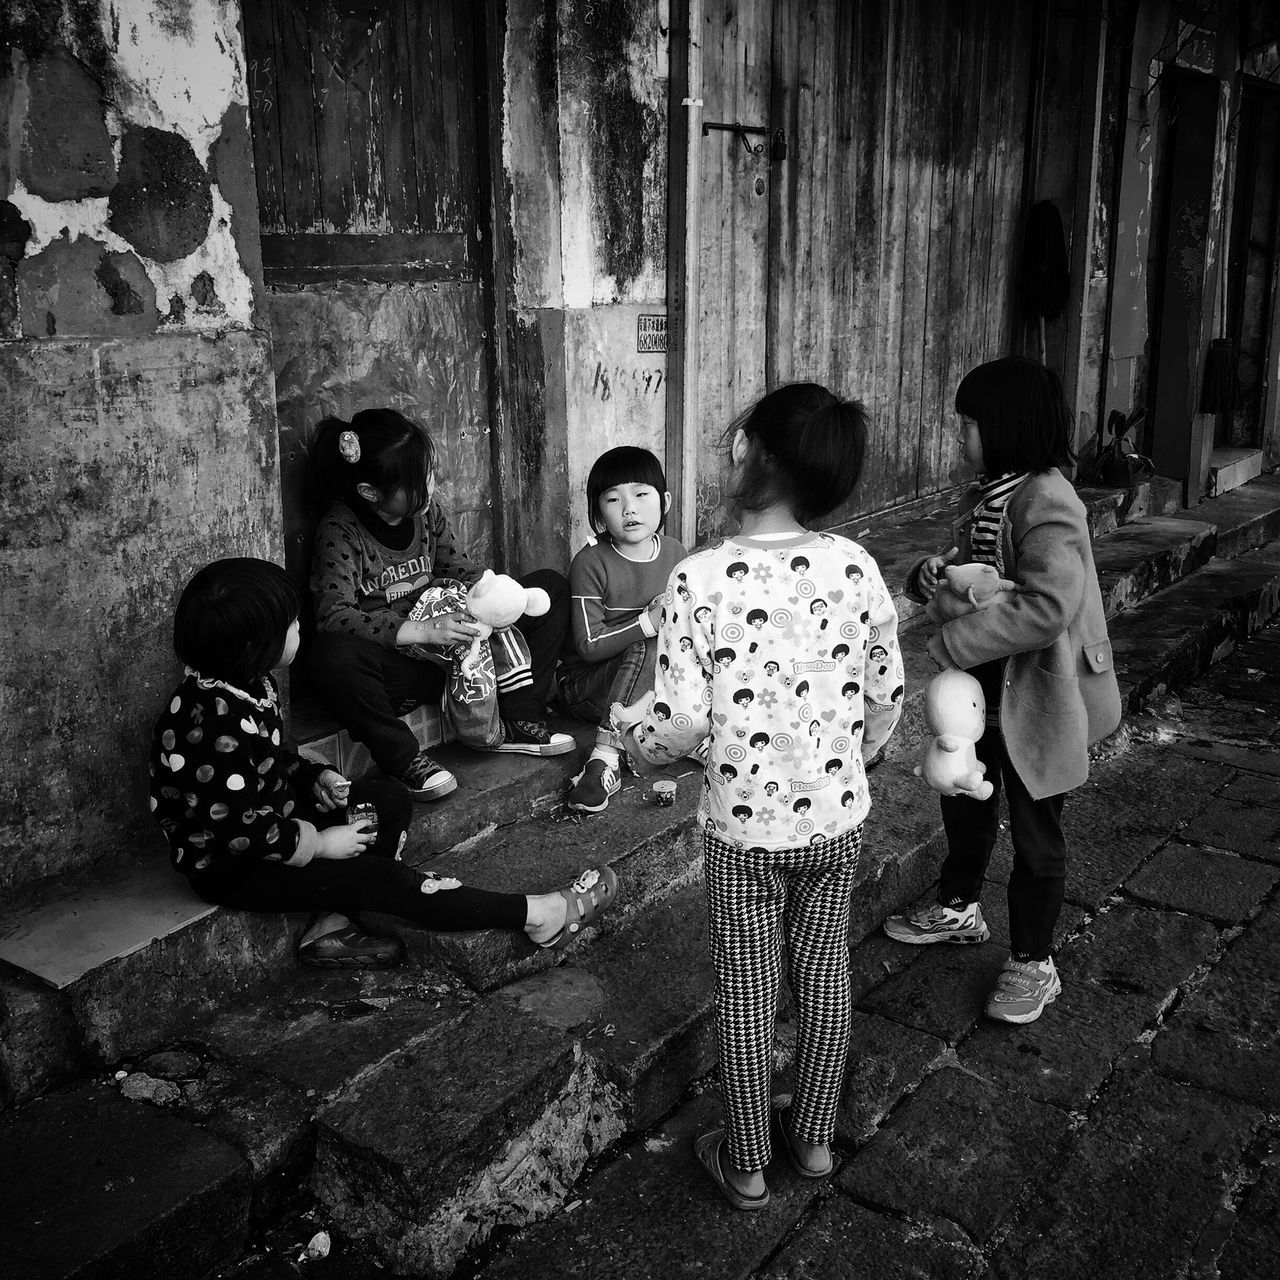 Sitting Girls Lifestyles Built Structure Outdoors Togetherness Childhood Kids Children Eye4photography  Enjoy The New Normal Blackandwhite Street Photo Street Photography Bnw EyeEm Taiwan My Black & White Photography Taking Photos Still Life Daily Life